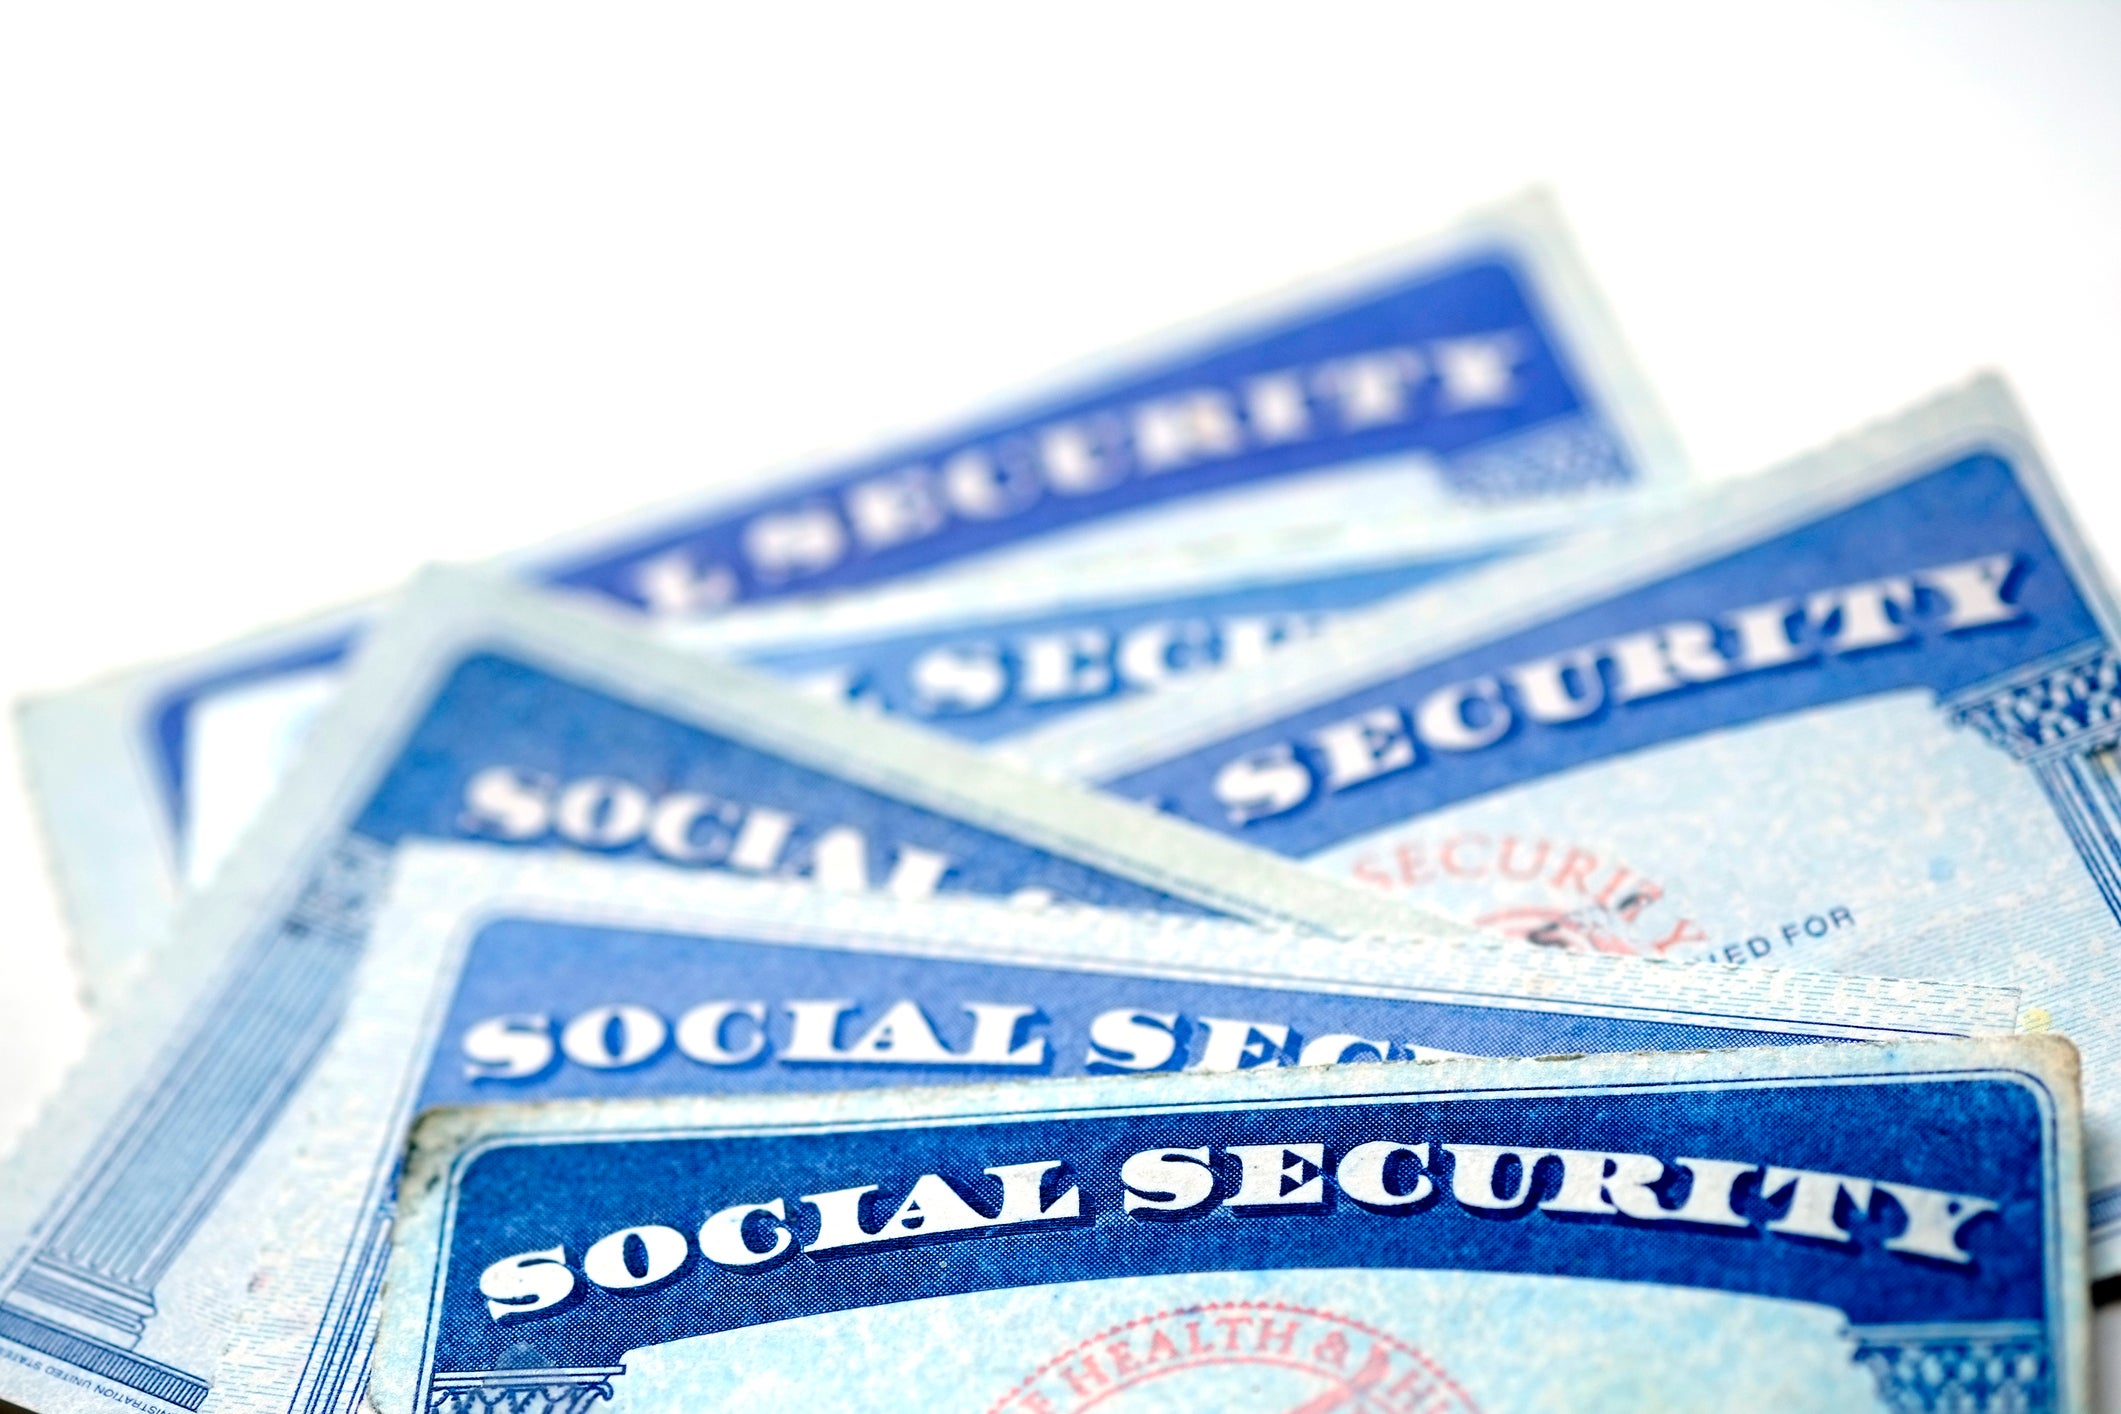 44% of Americans Share This Social Security Concern - The Motley Fool